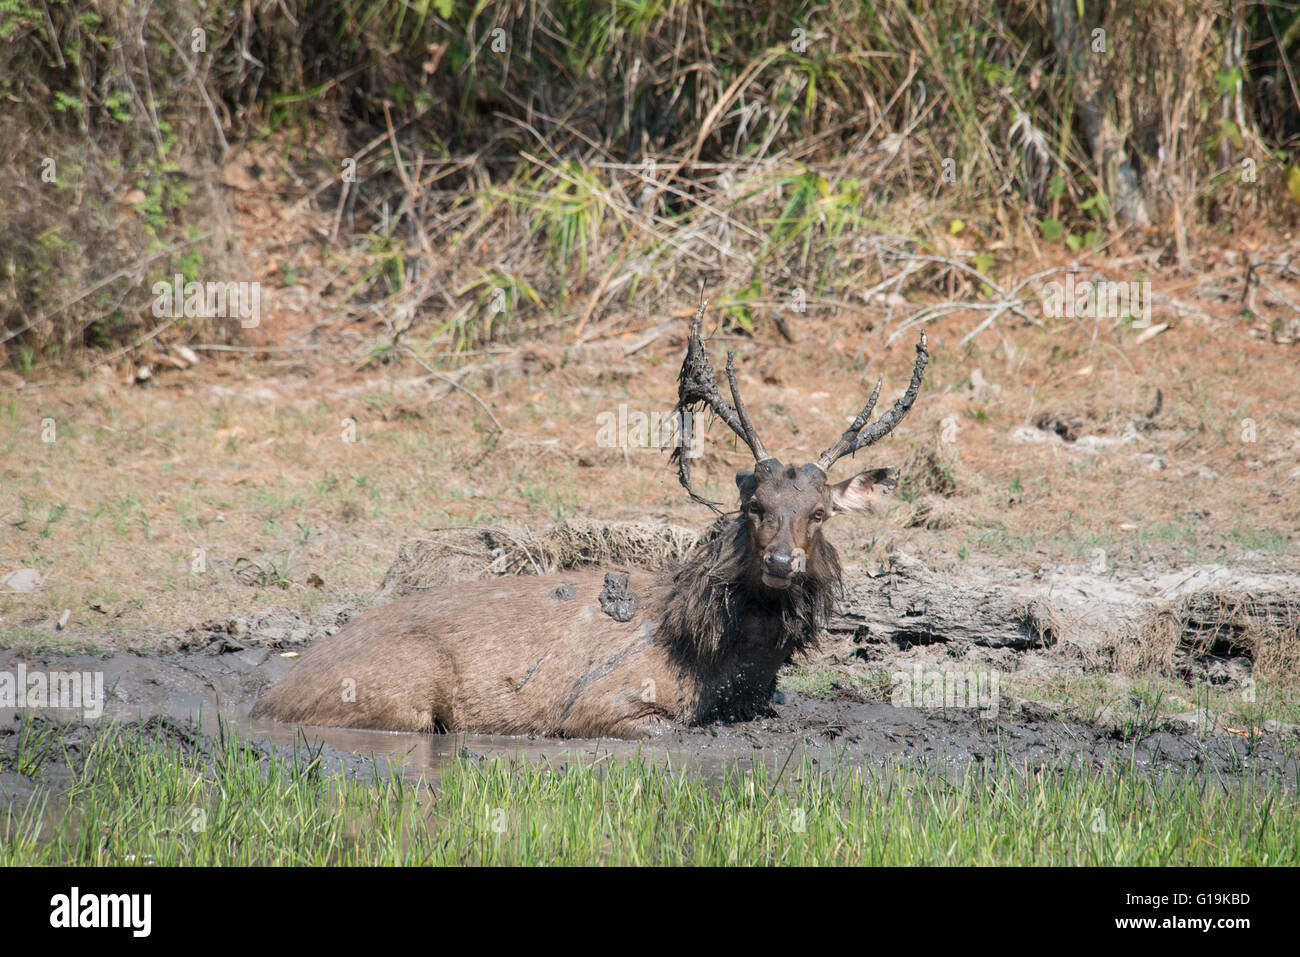 The sambar (Rusa unicolor) is a large deer native to the Indian subcontinent, southern China and Southeast Asia. - Stock Image